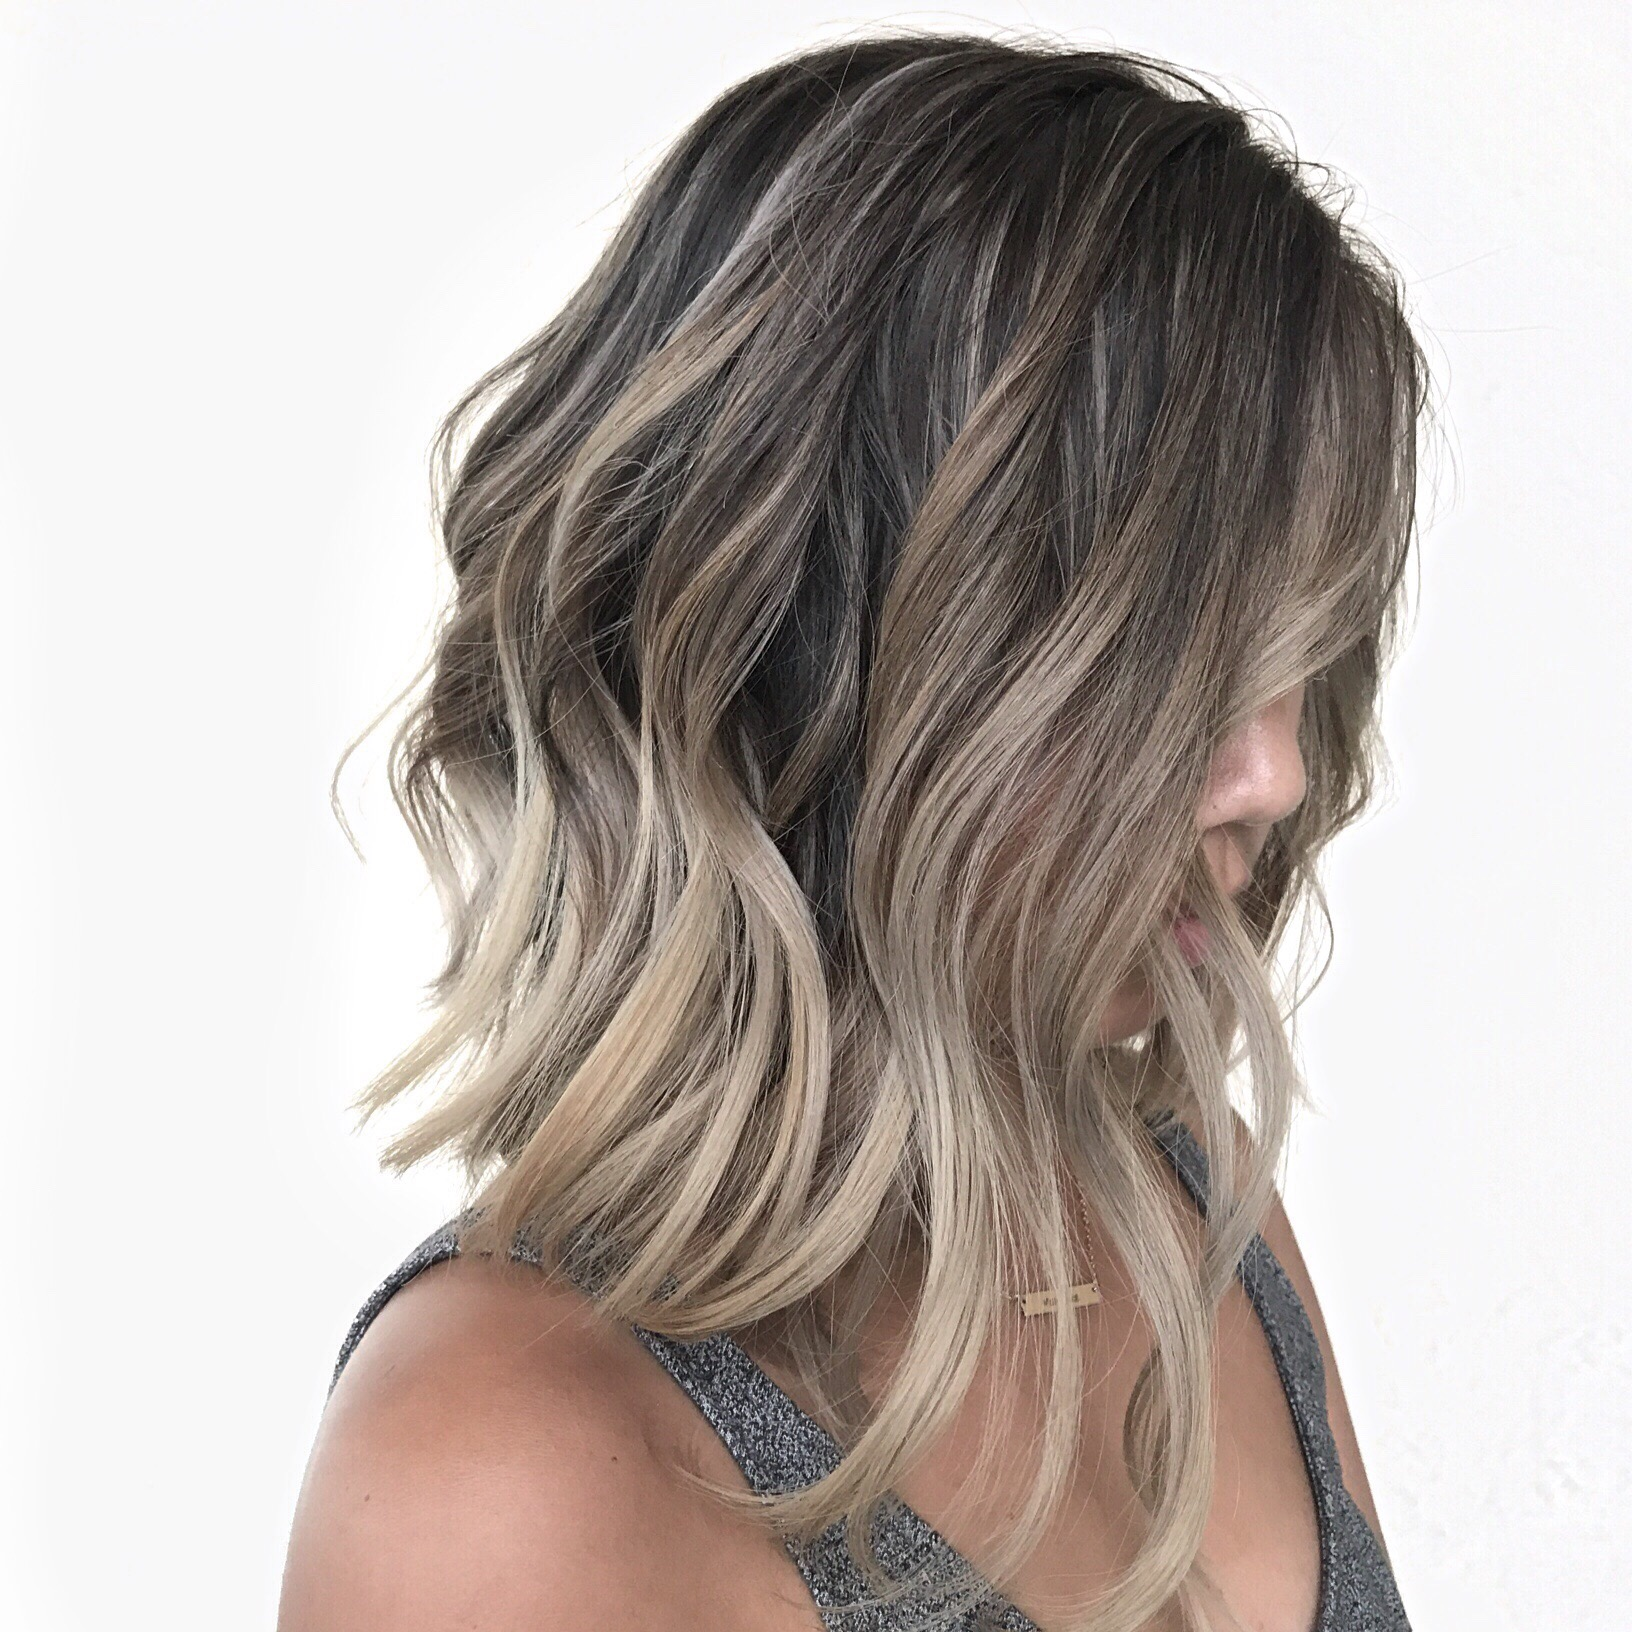 Ash blonde, aline haircut